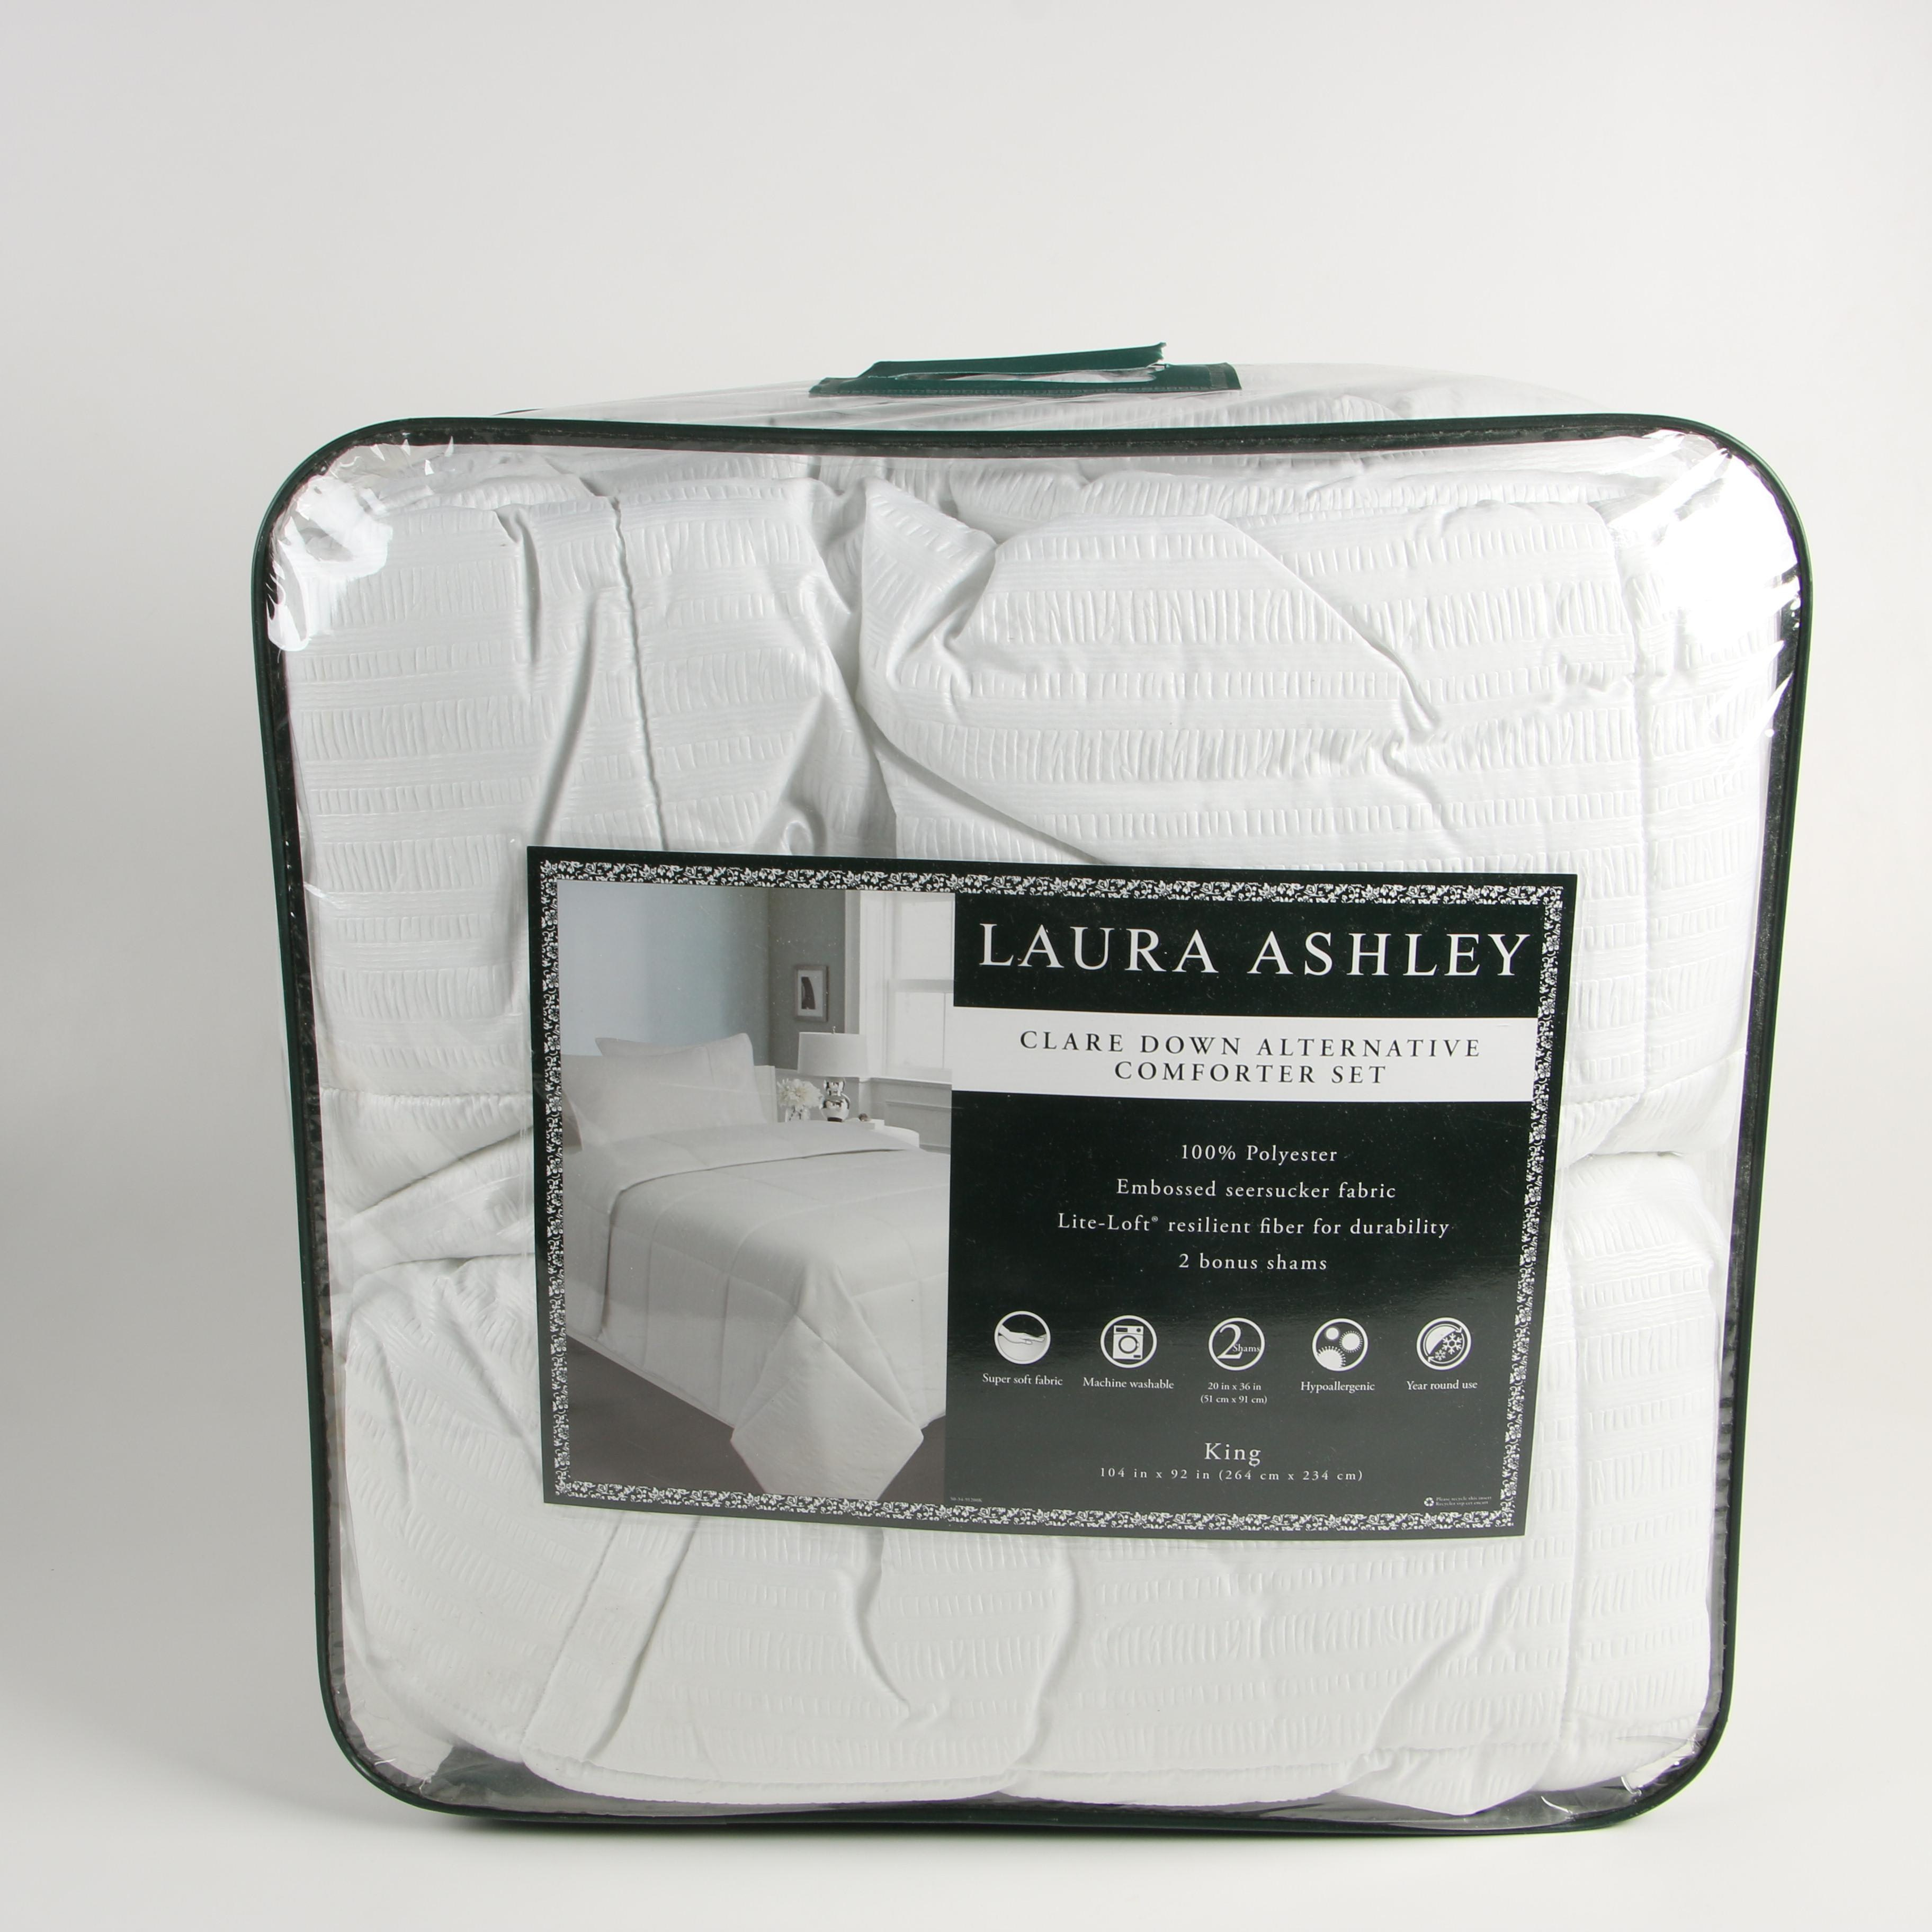 Laura Ashley King-Sized Clare Down Alternative Comforter with Shams